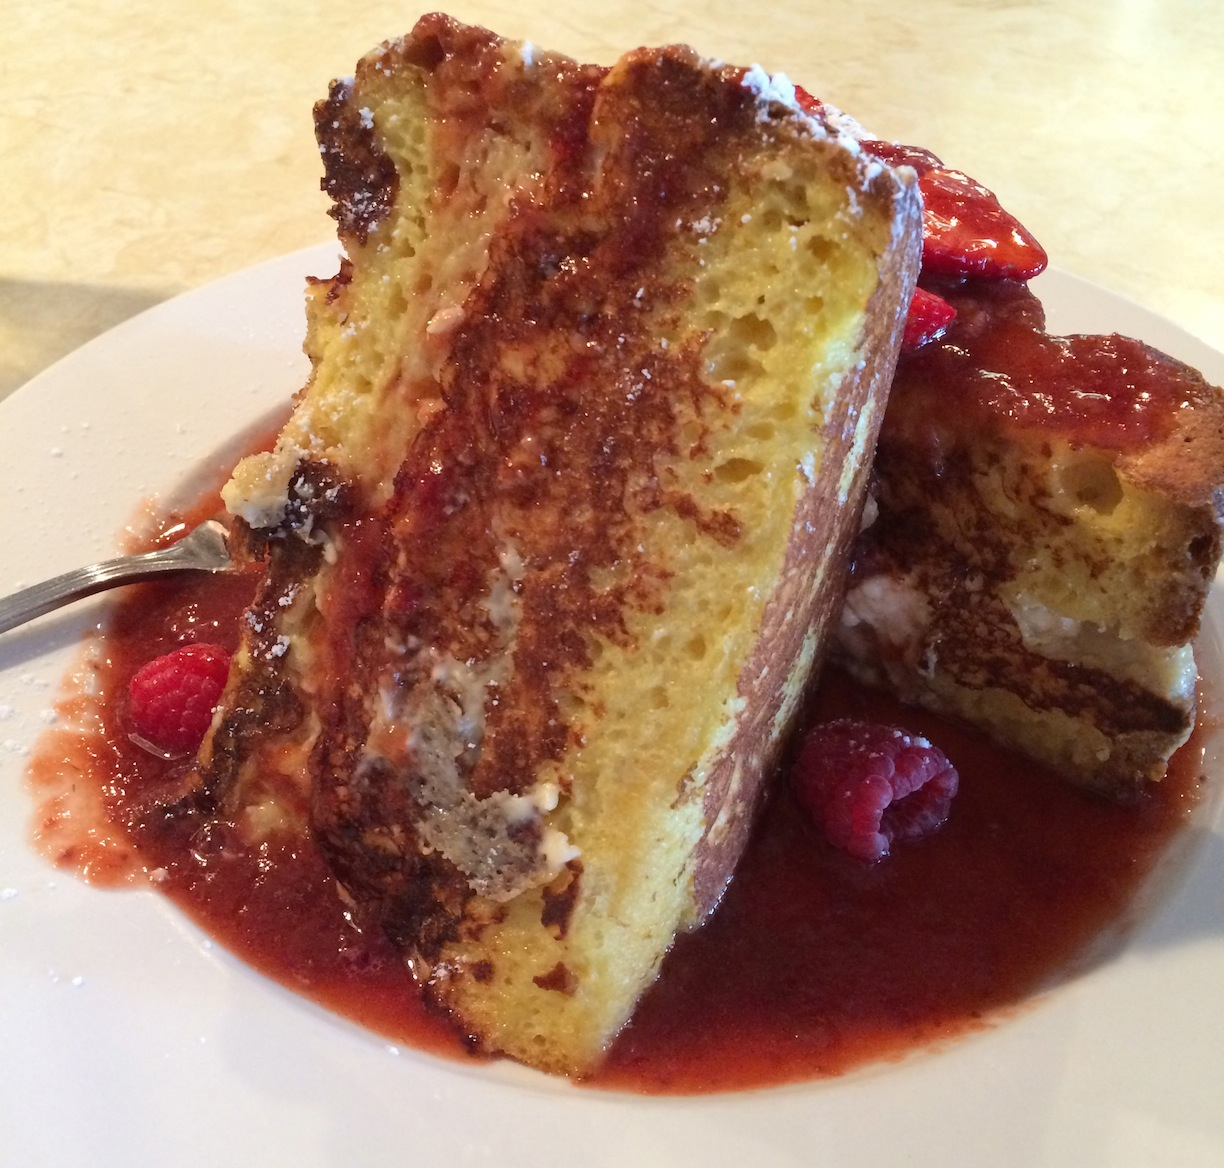 Skylar's 'Have an A1 Day' Stuffed French Toast at Sabrina's Cafe